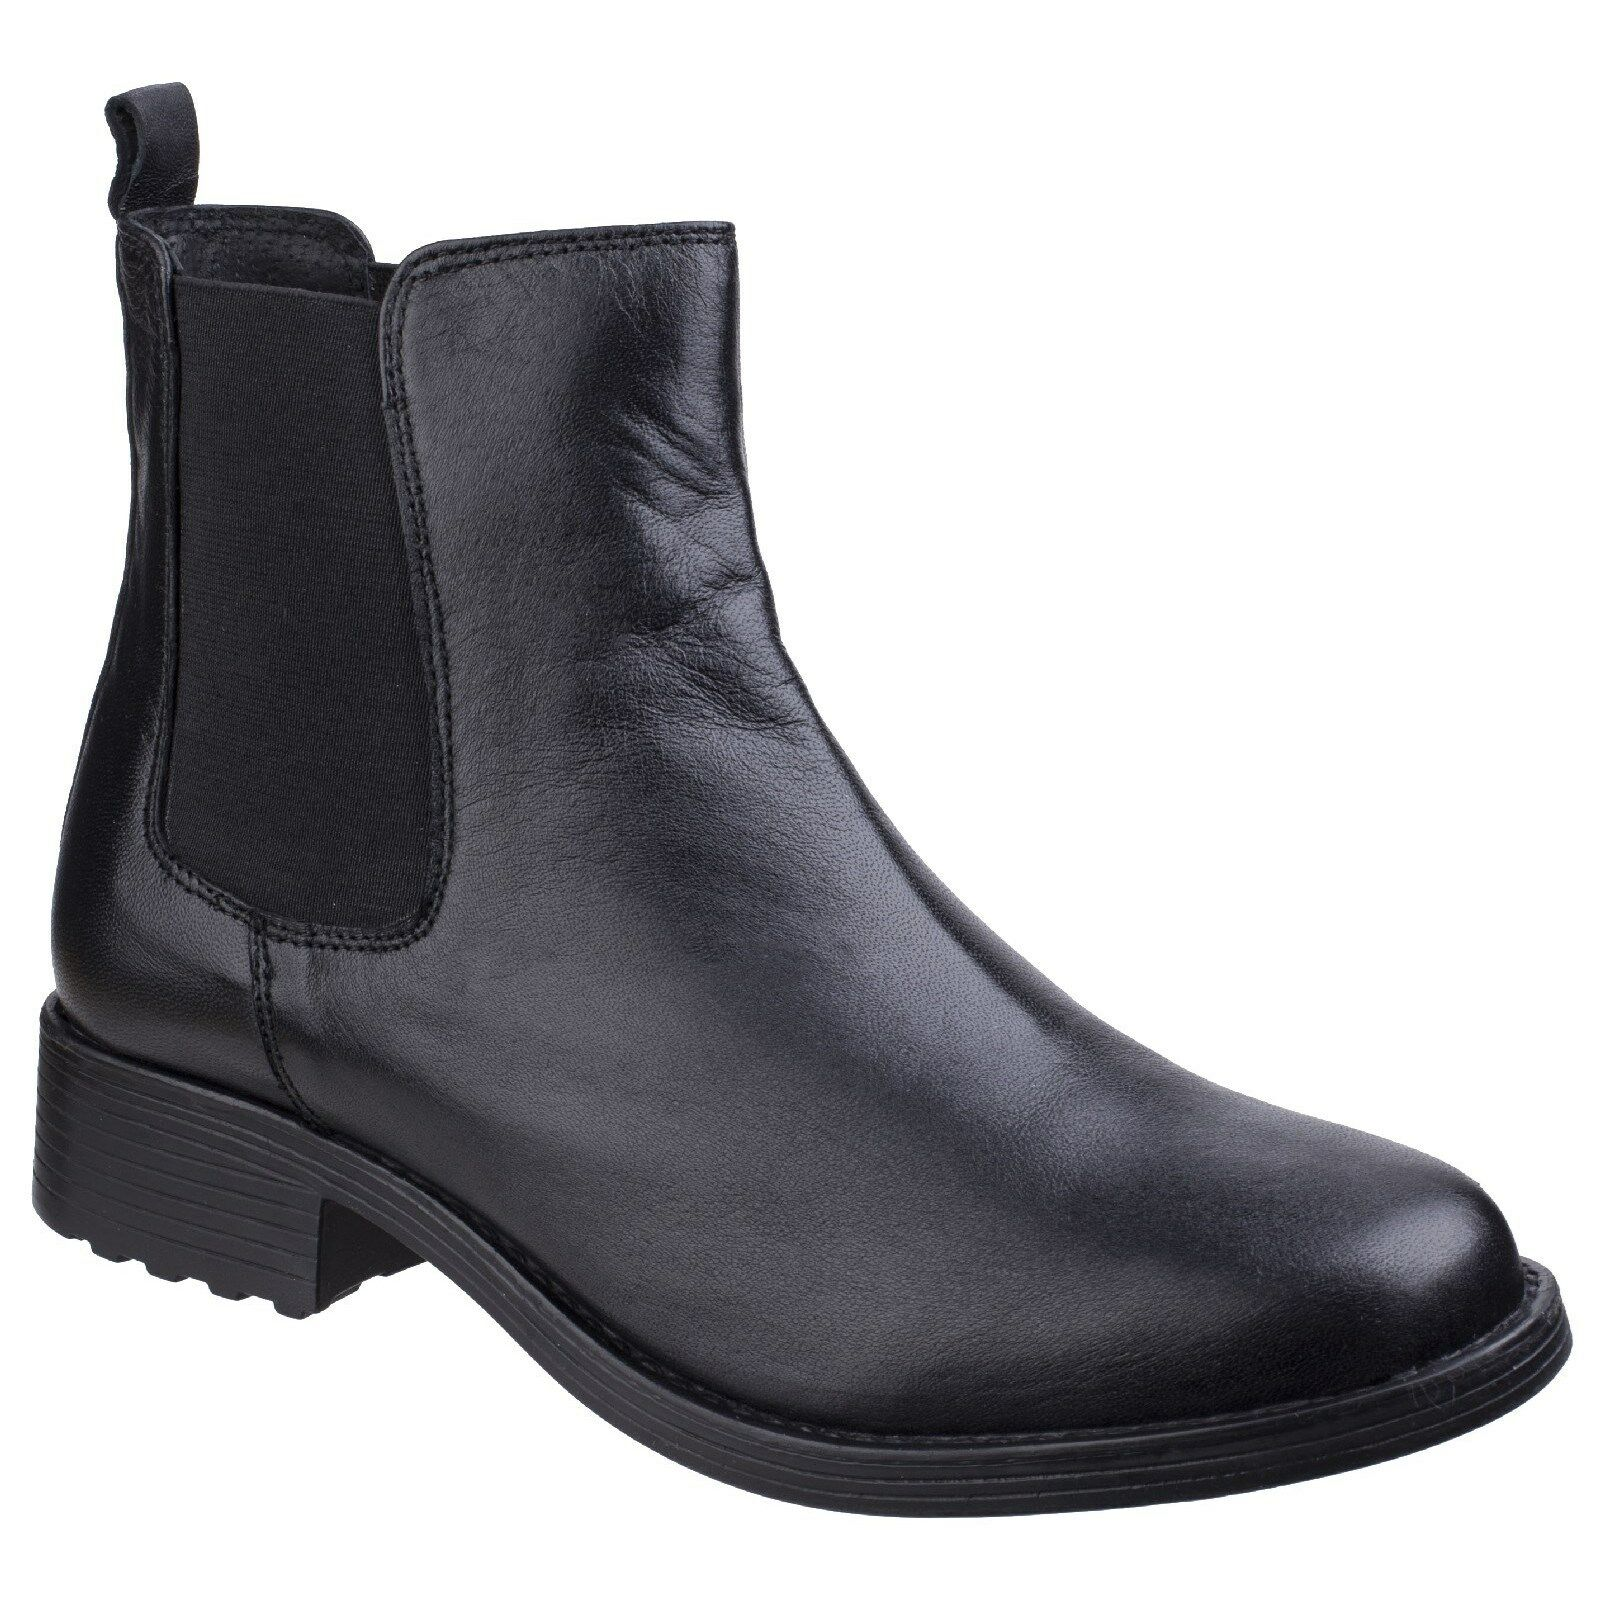 Fleet & Foster Cambridge Leather Chelsea Ankle Pull On Black Boots Womens Ladies